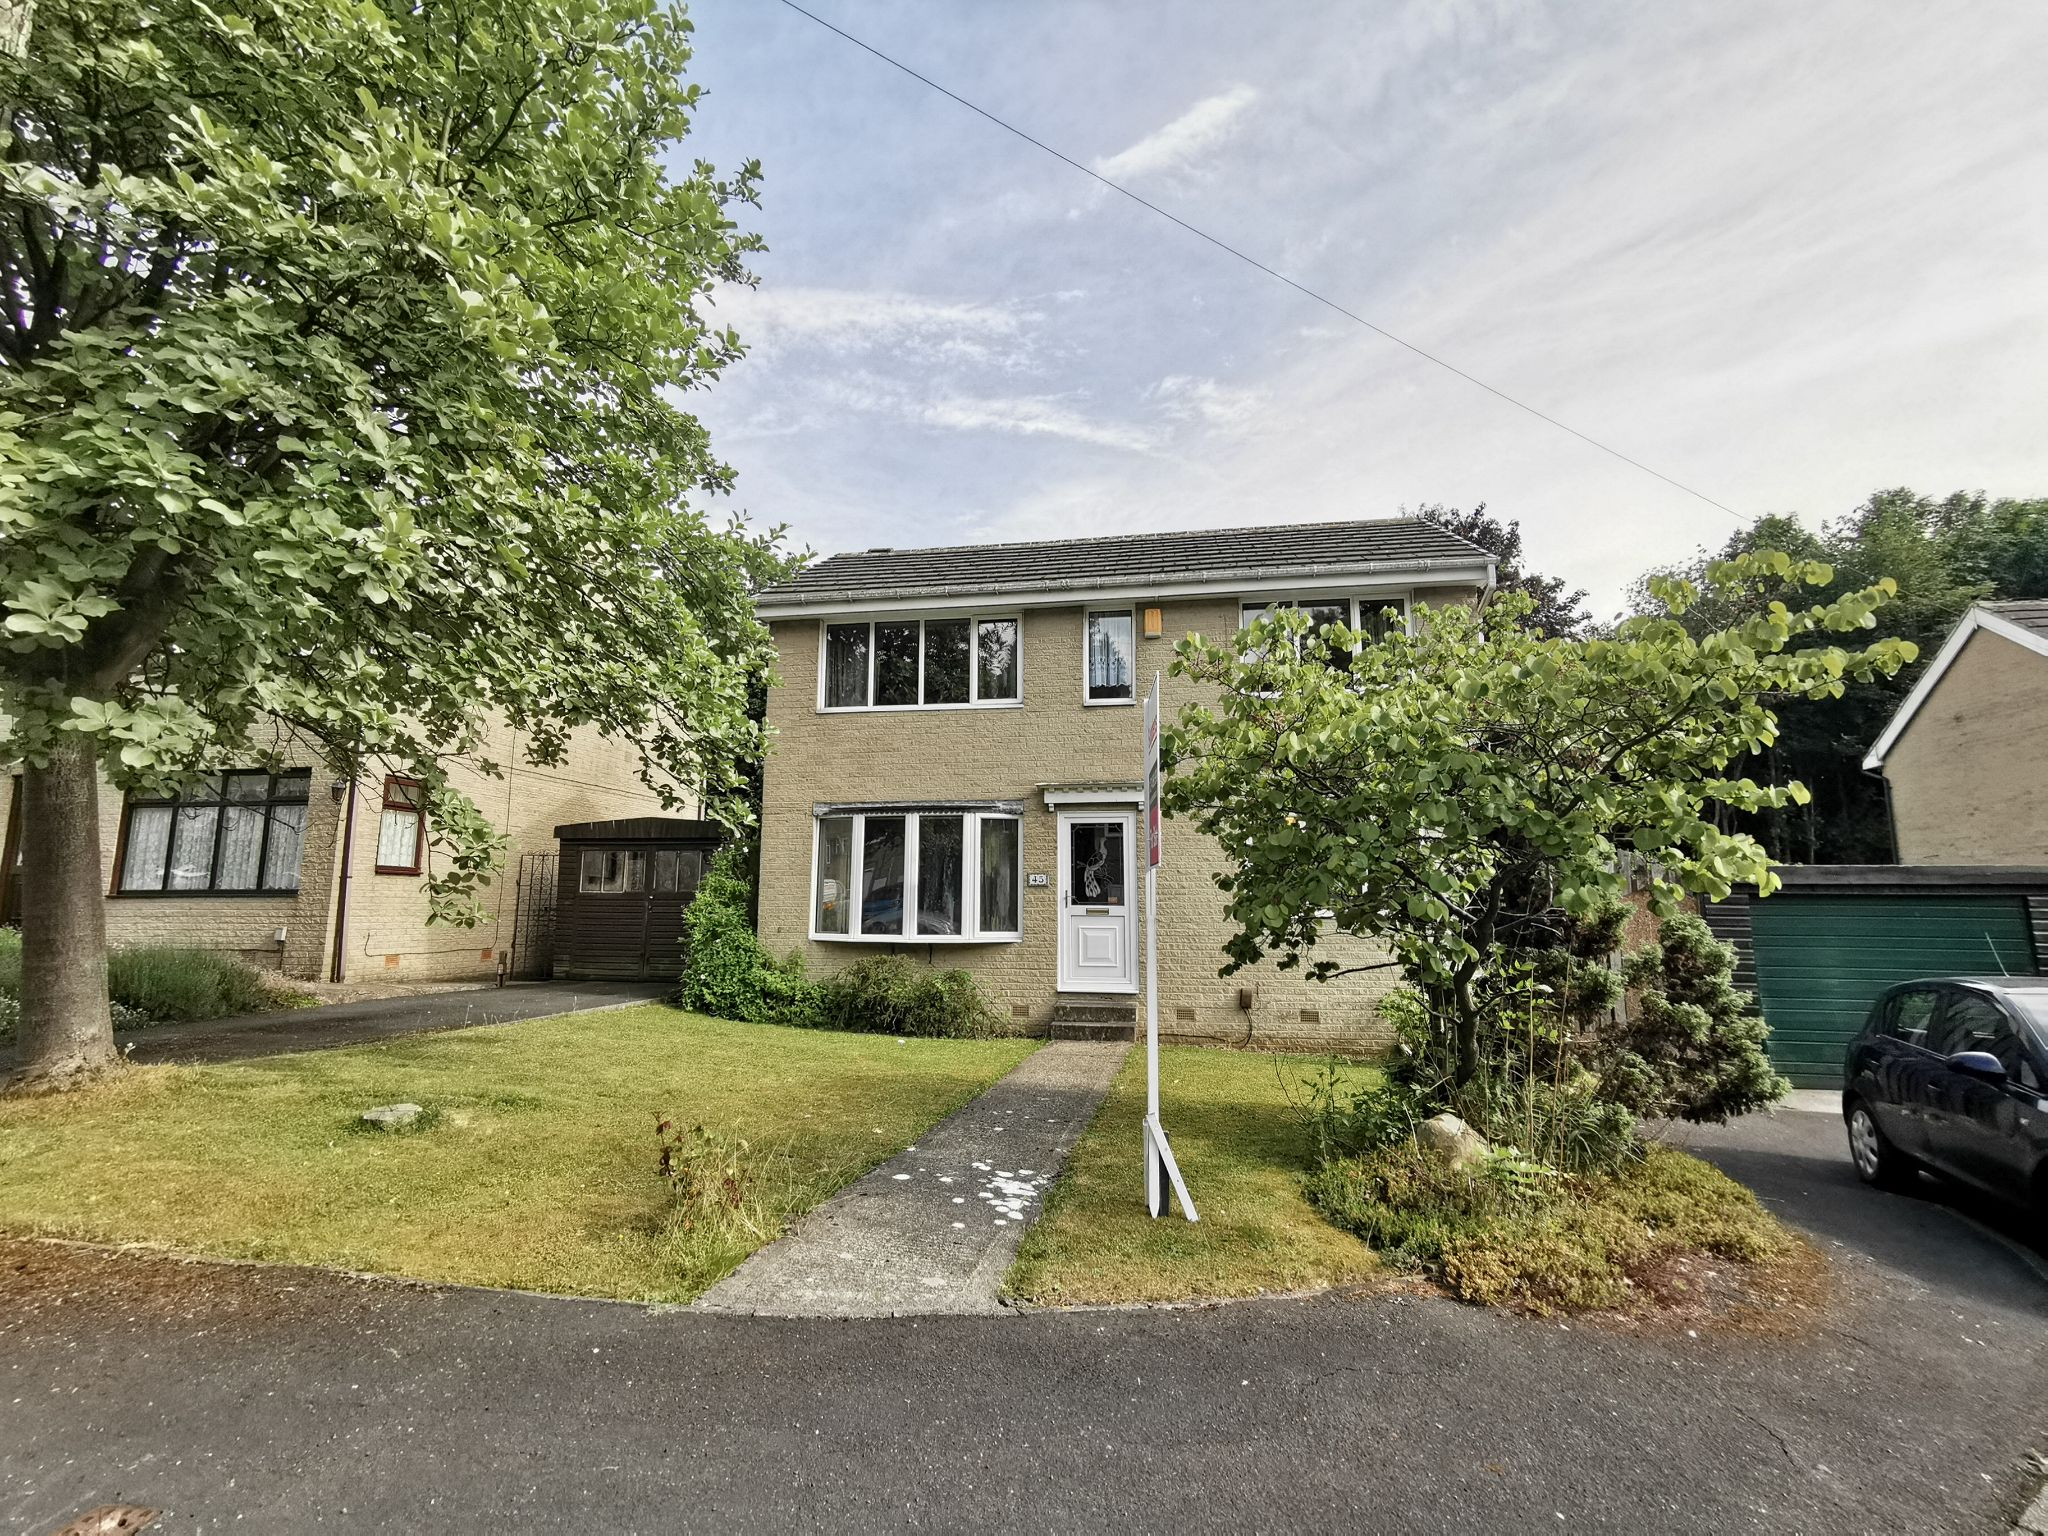 3 bedroom detached house Sold in Bradford - Photograph 16.